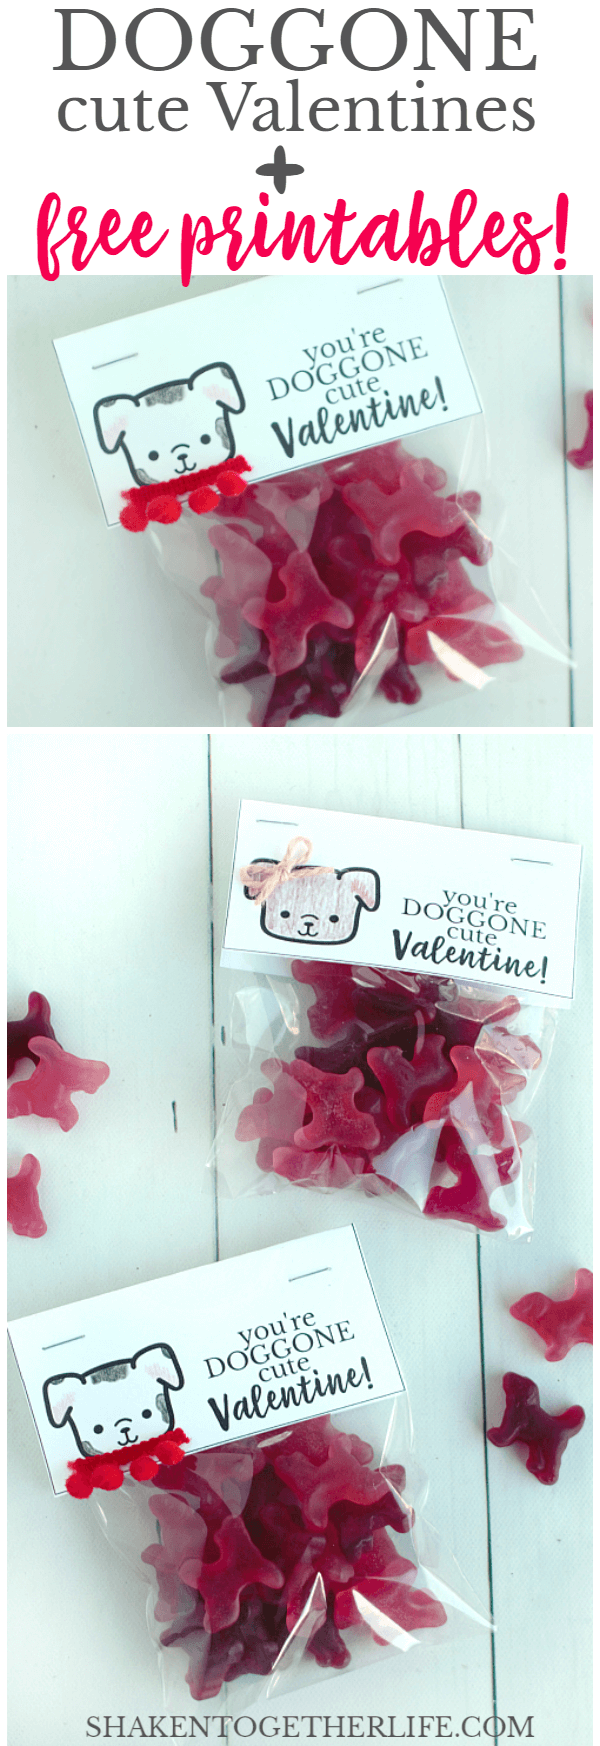 Fill a bag with gummy dogs, color and decorate our FREE printable bag toppers and our DOGGONE Cute Valentines are ready for friends, family and classmates!